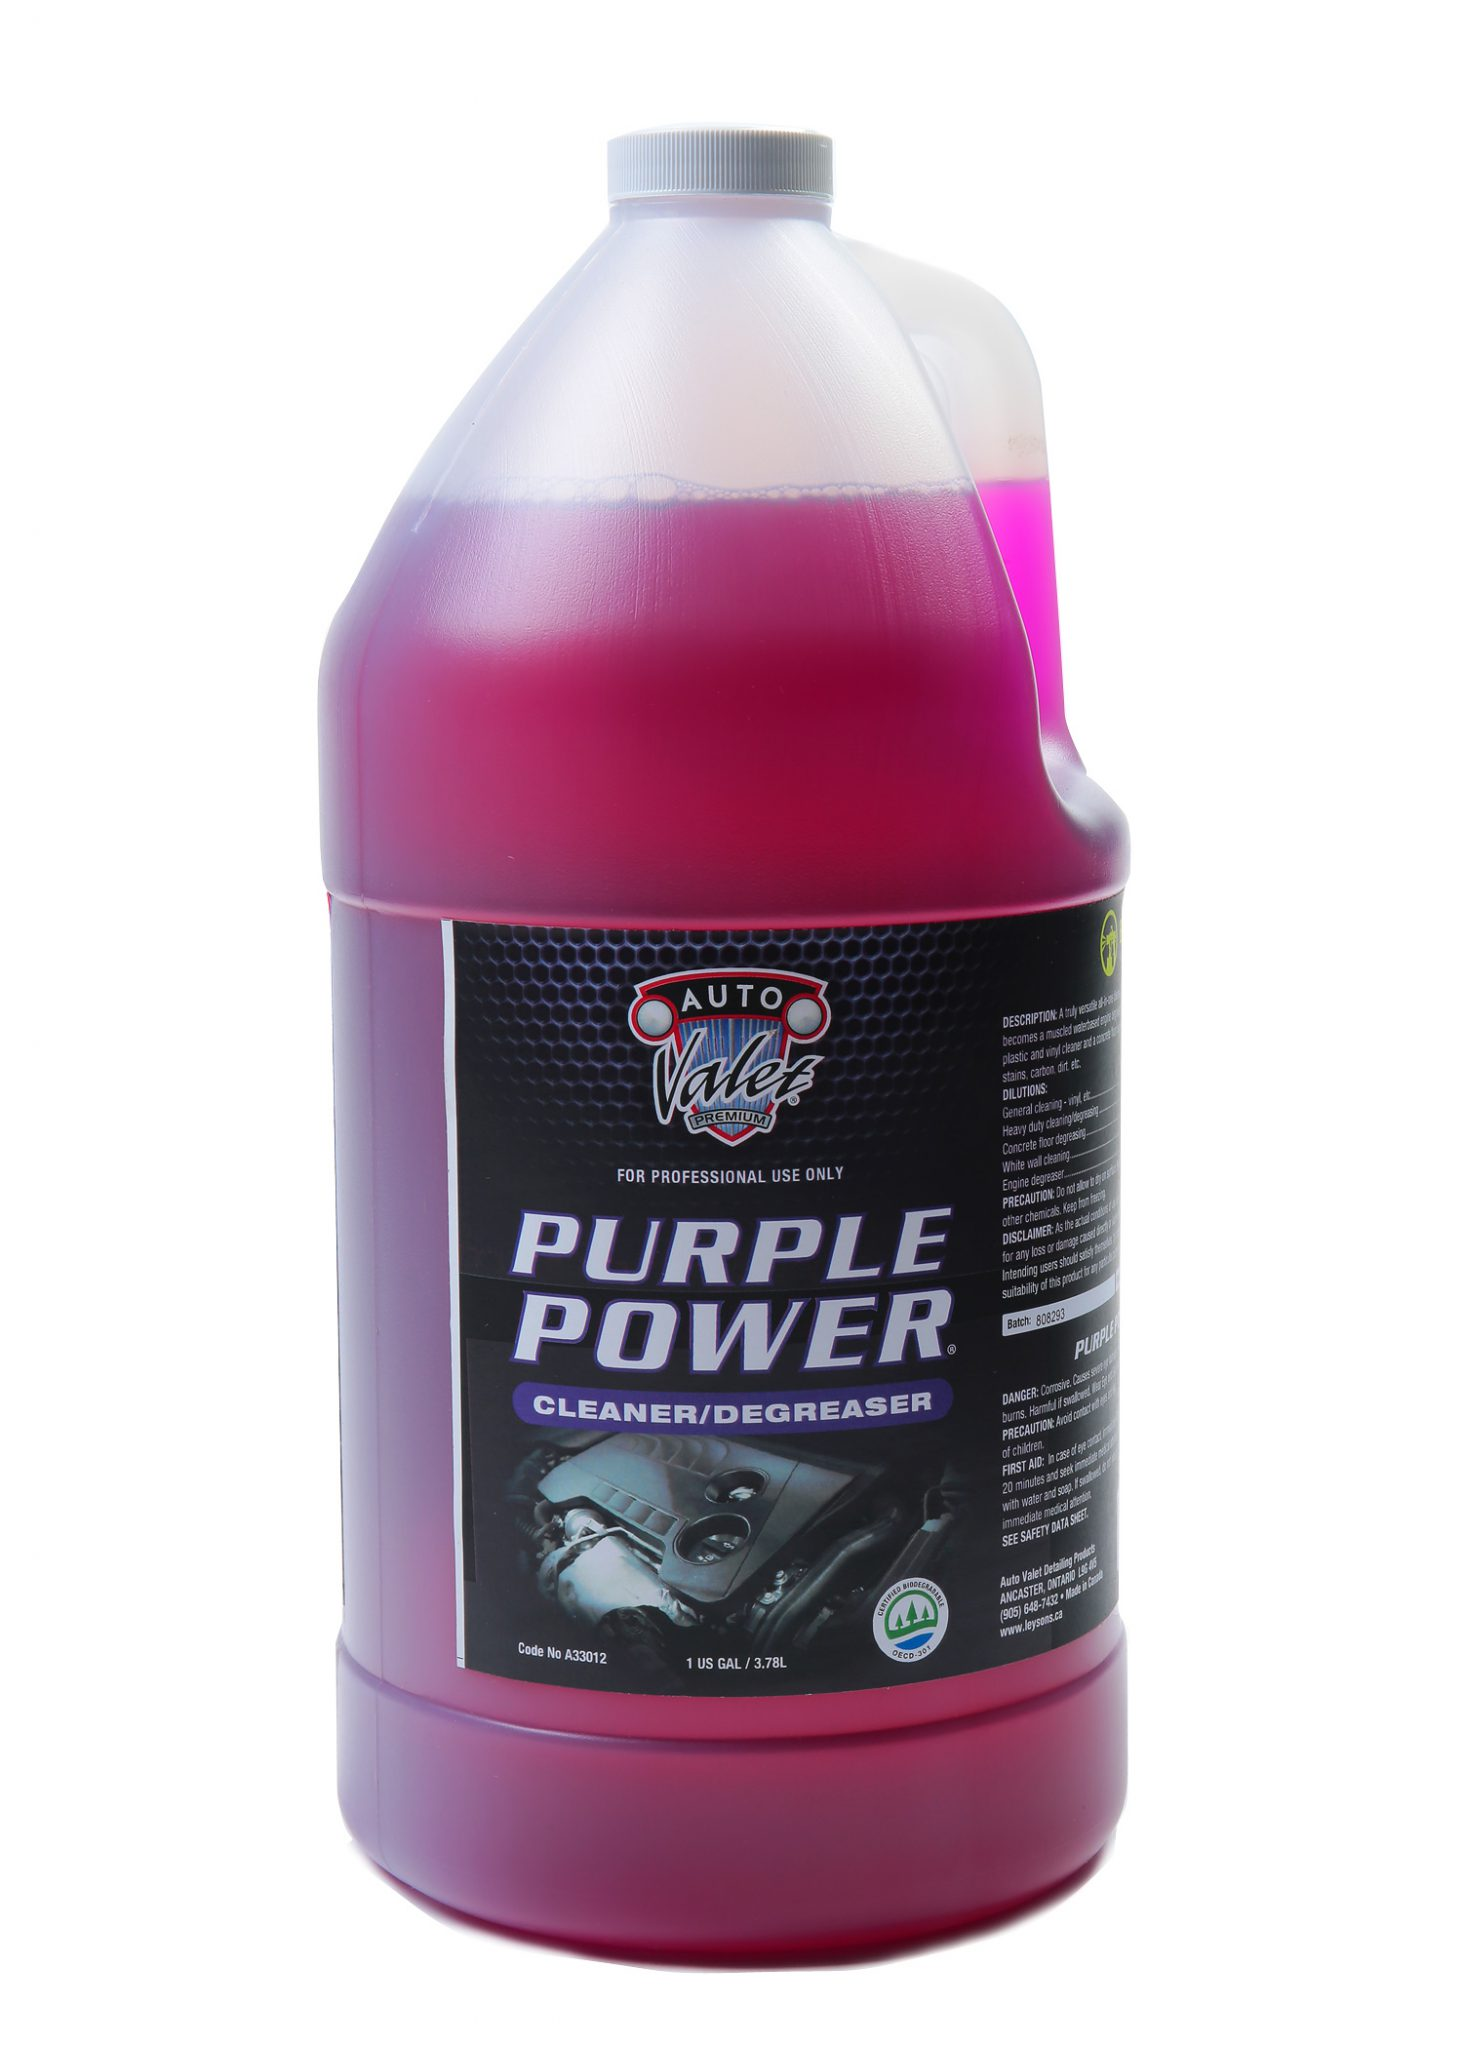 Av Purple Power All Purpose Hd Cleaner Degreaser 3 78